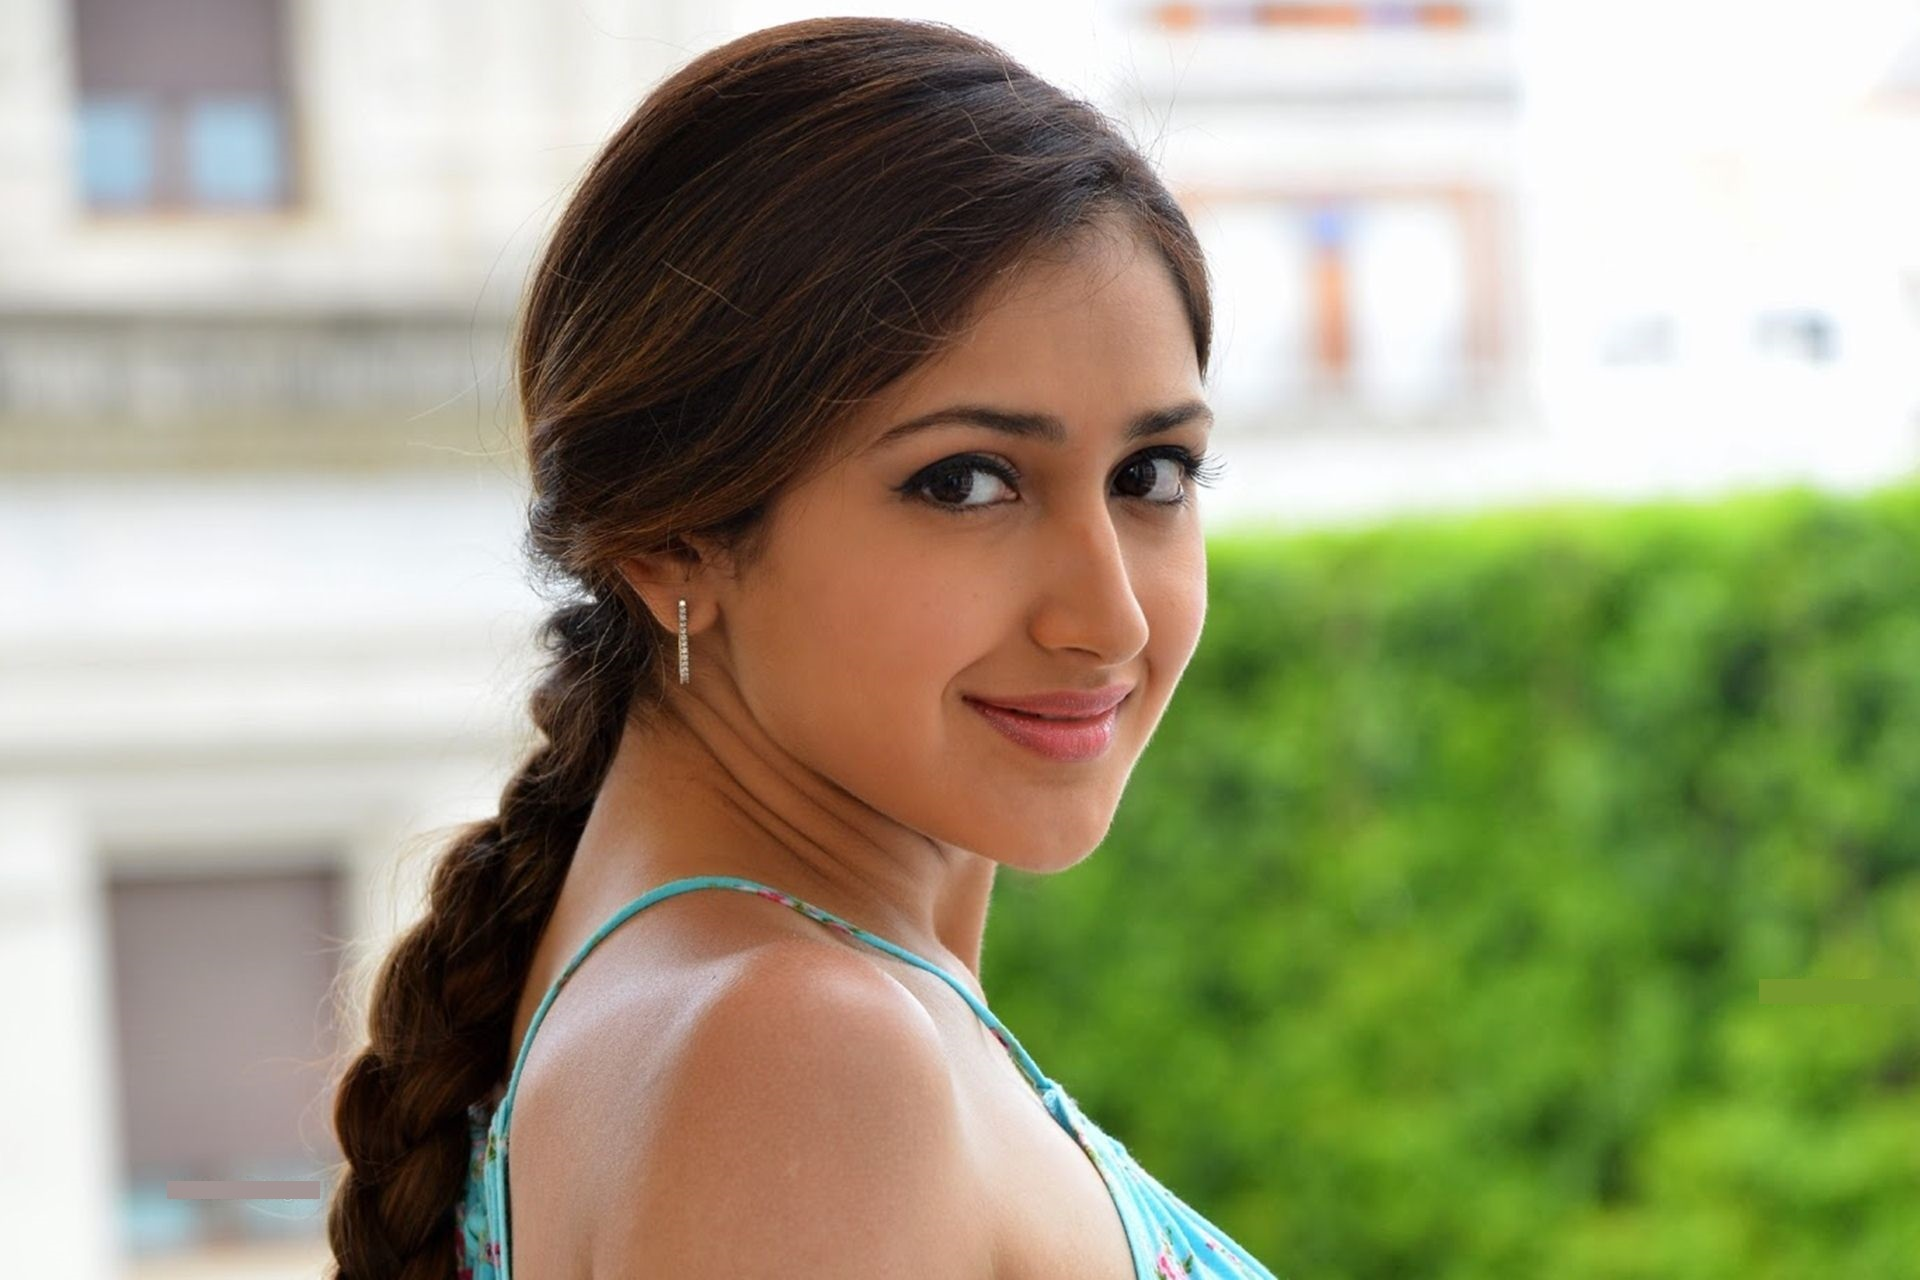 Sayesha saigal cute smile photos